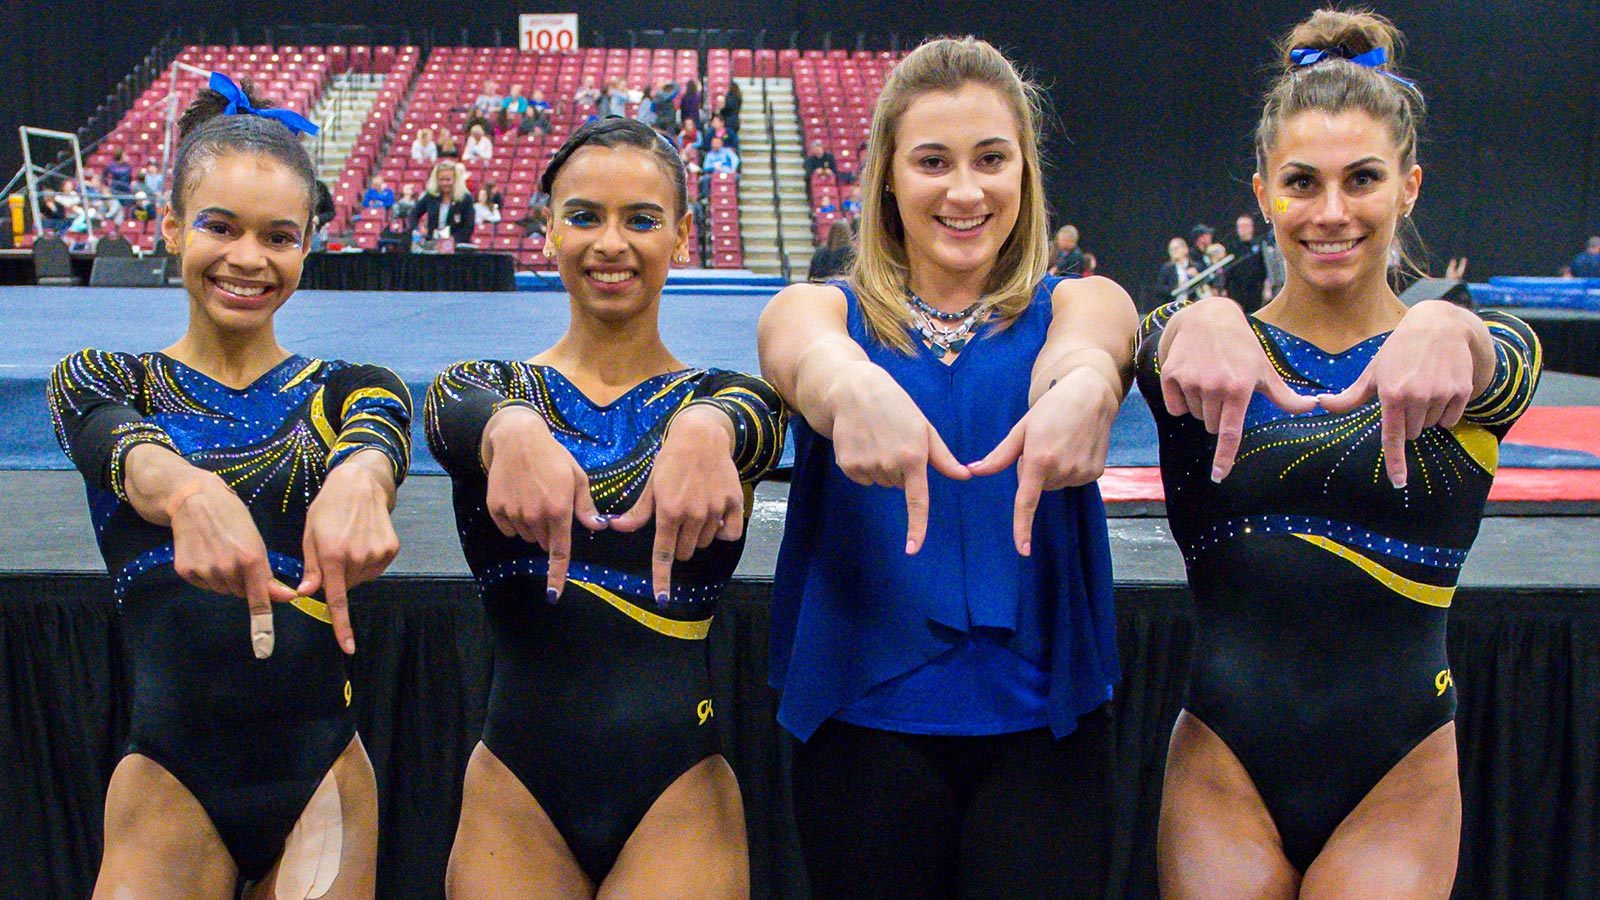 a678f0bd7c2c Q&A with Team 42's Four Seniors - University of Michigan Athletics